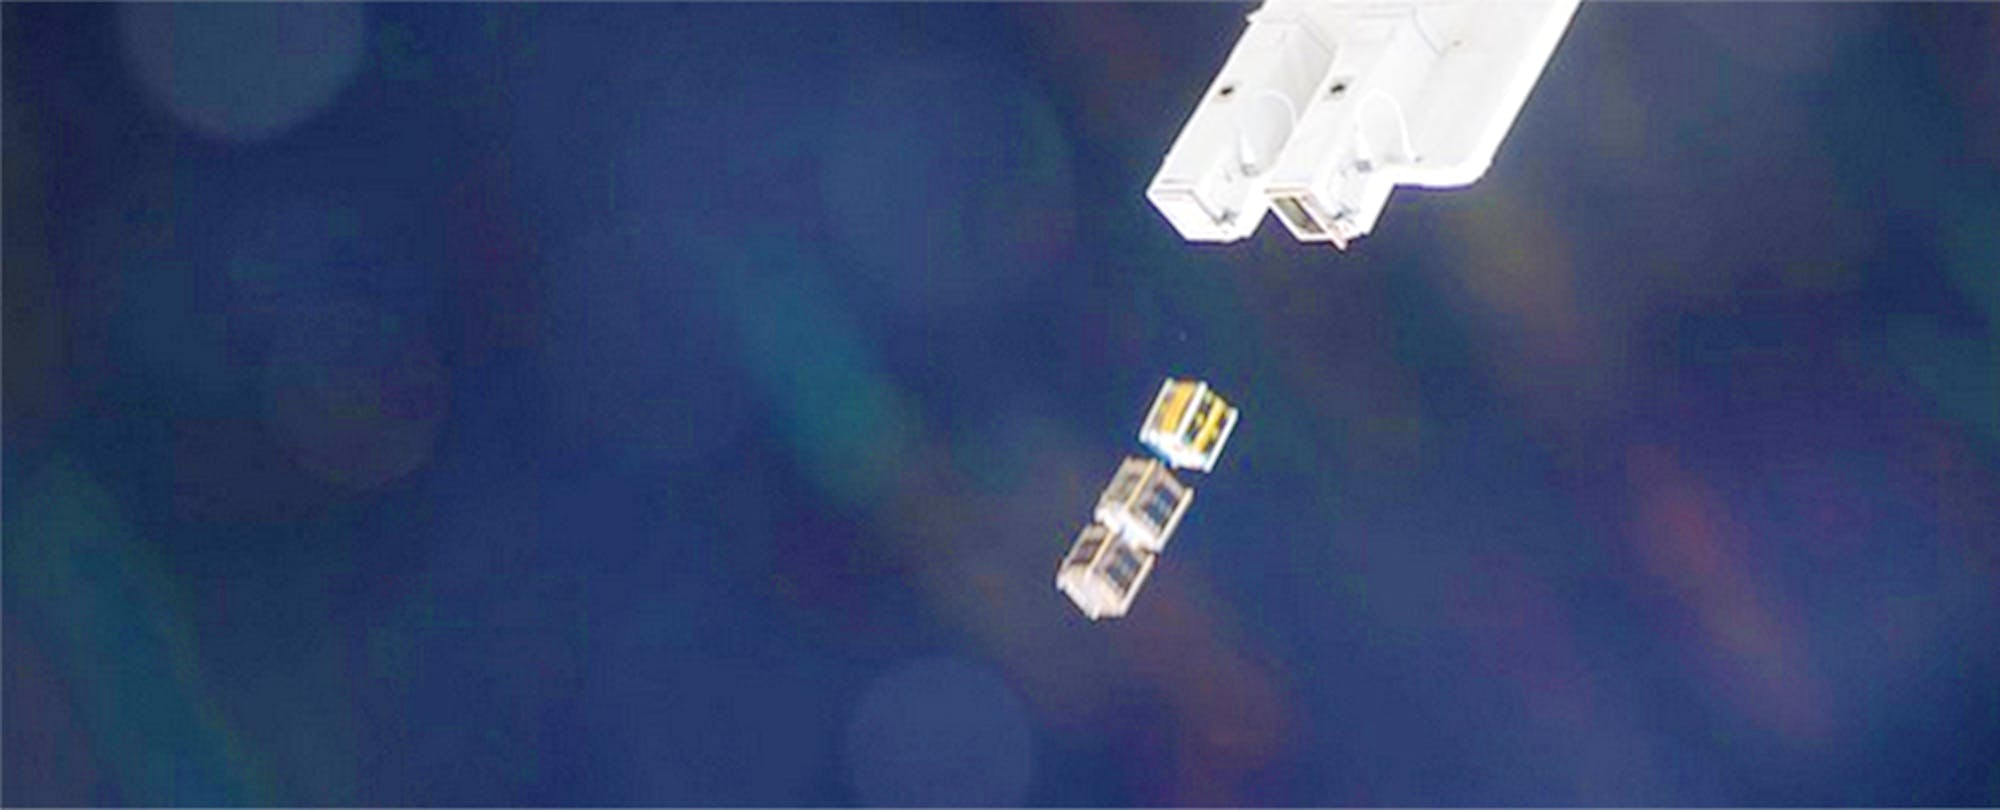 Ardusat Raises $1M to Bring Outer Space to the Classroom